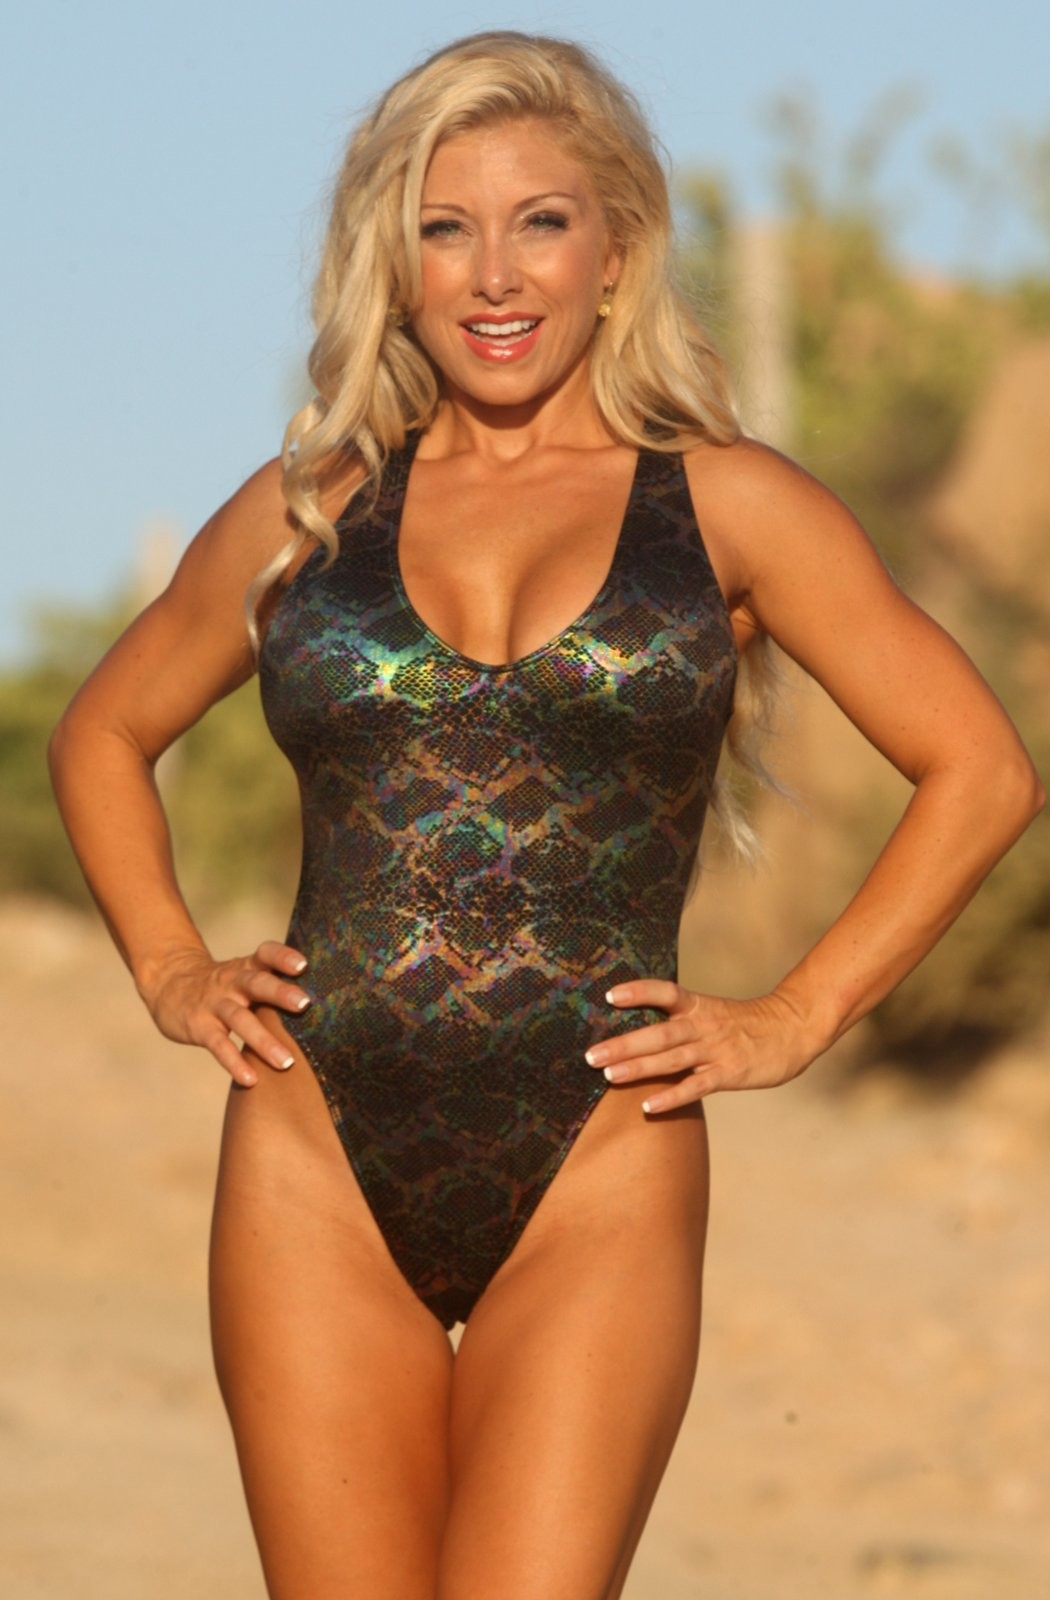 df9d0aaa1fca3 Ujena Hypnotic Black One Piece Swim Suit